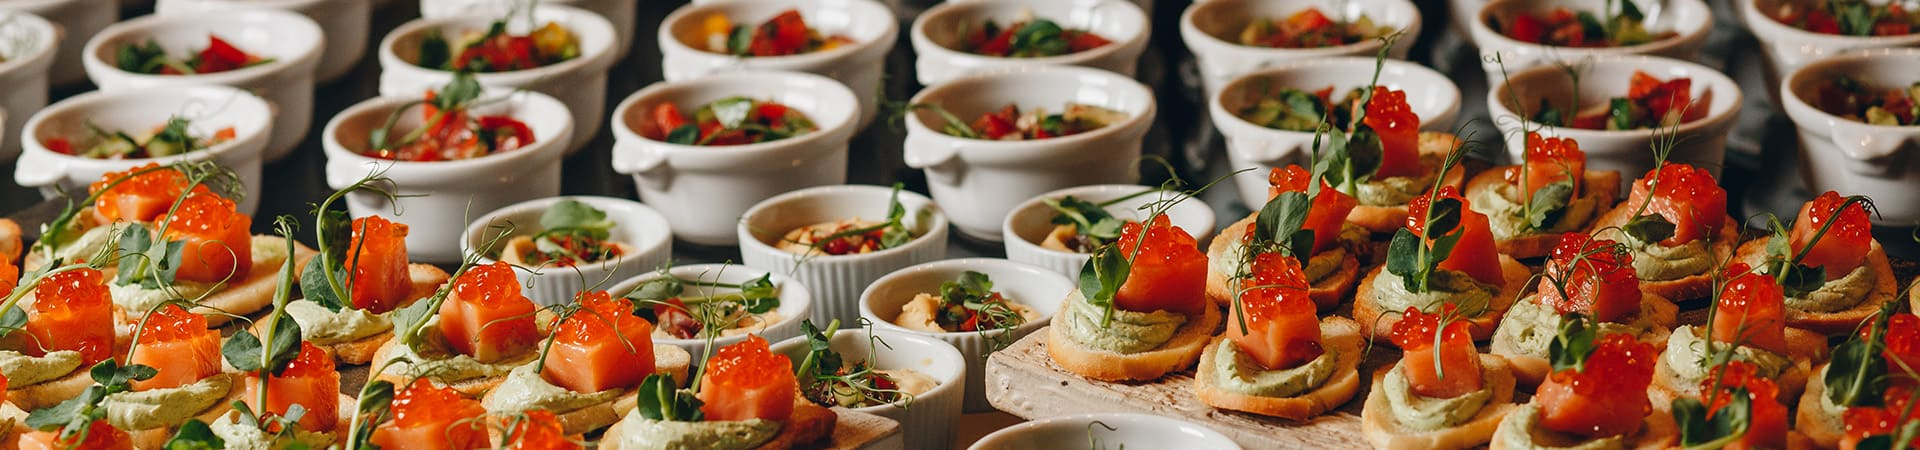 Food Service and Catering